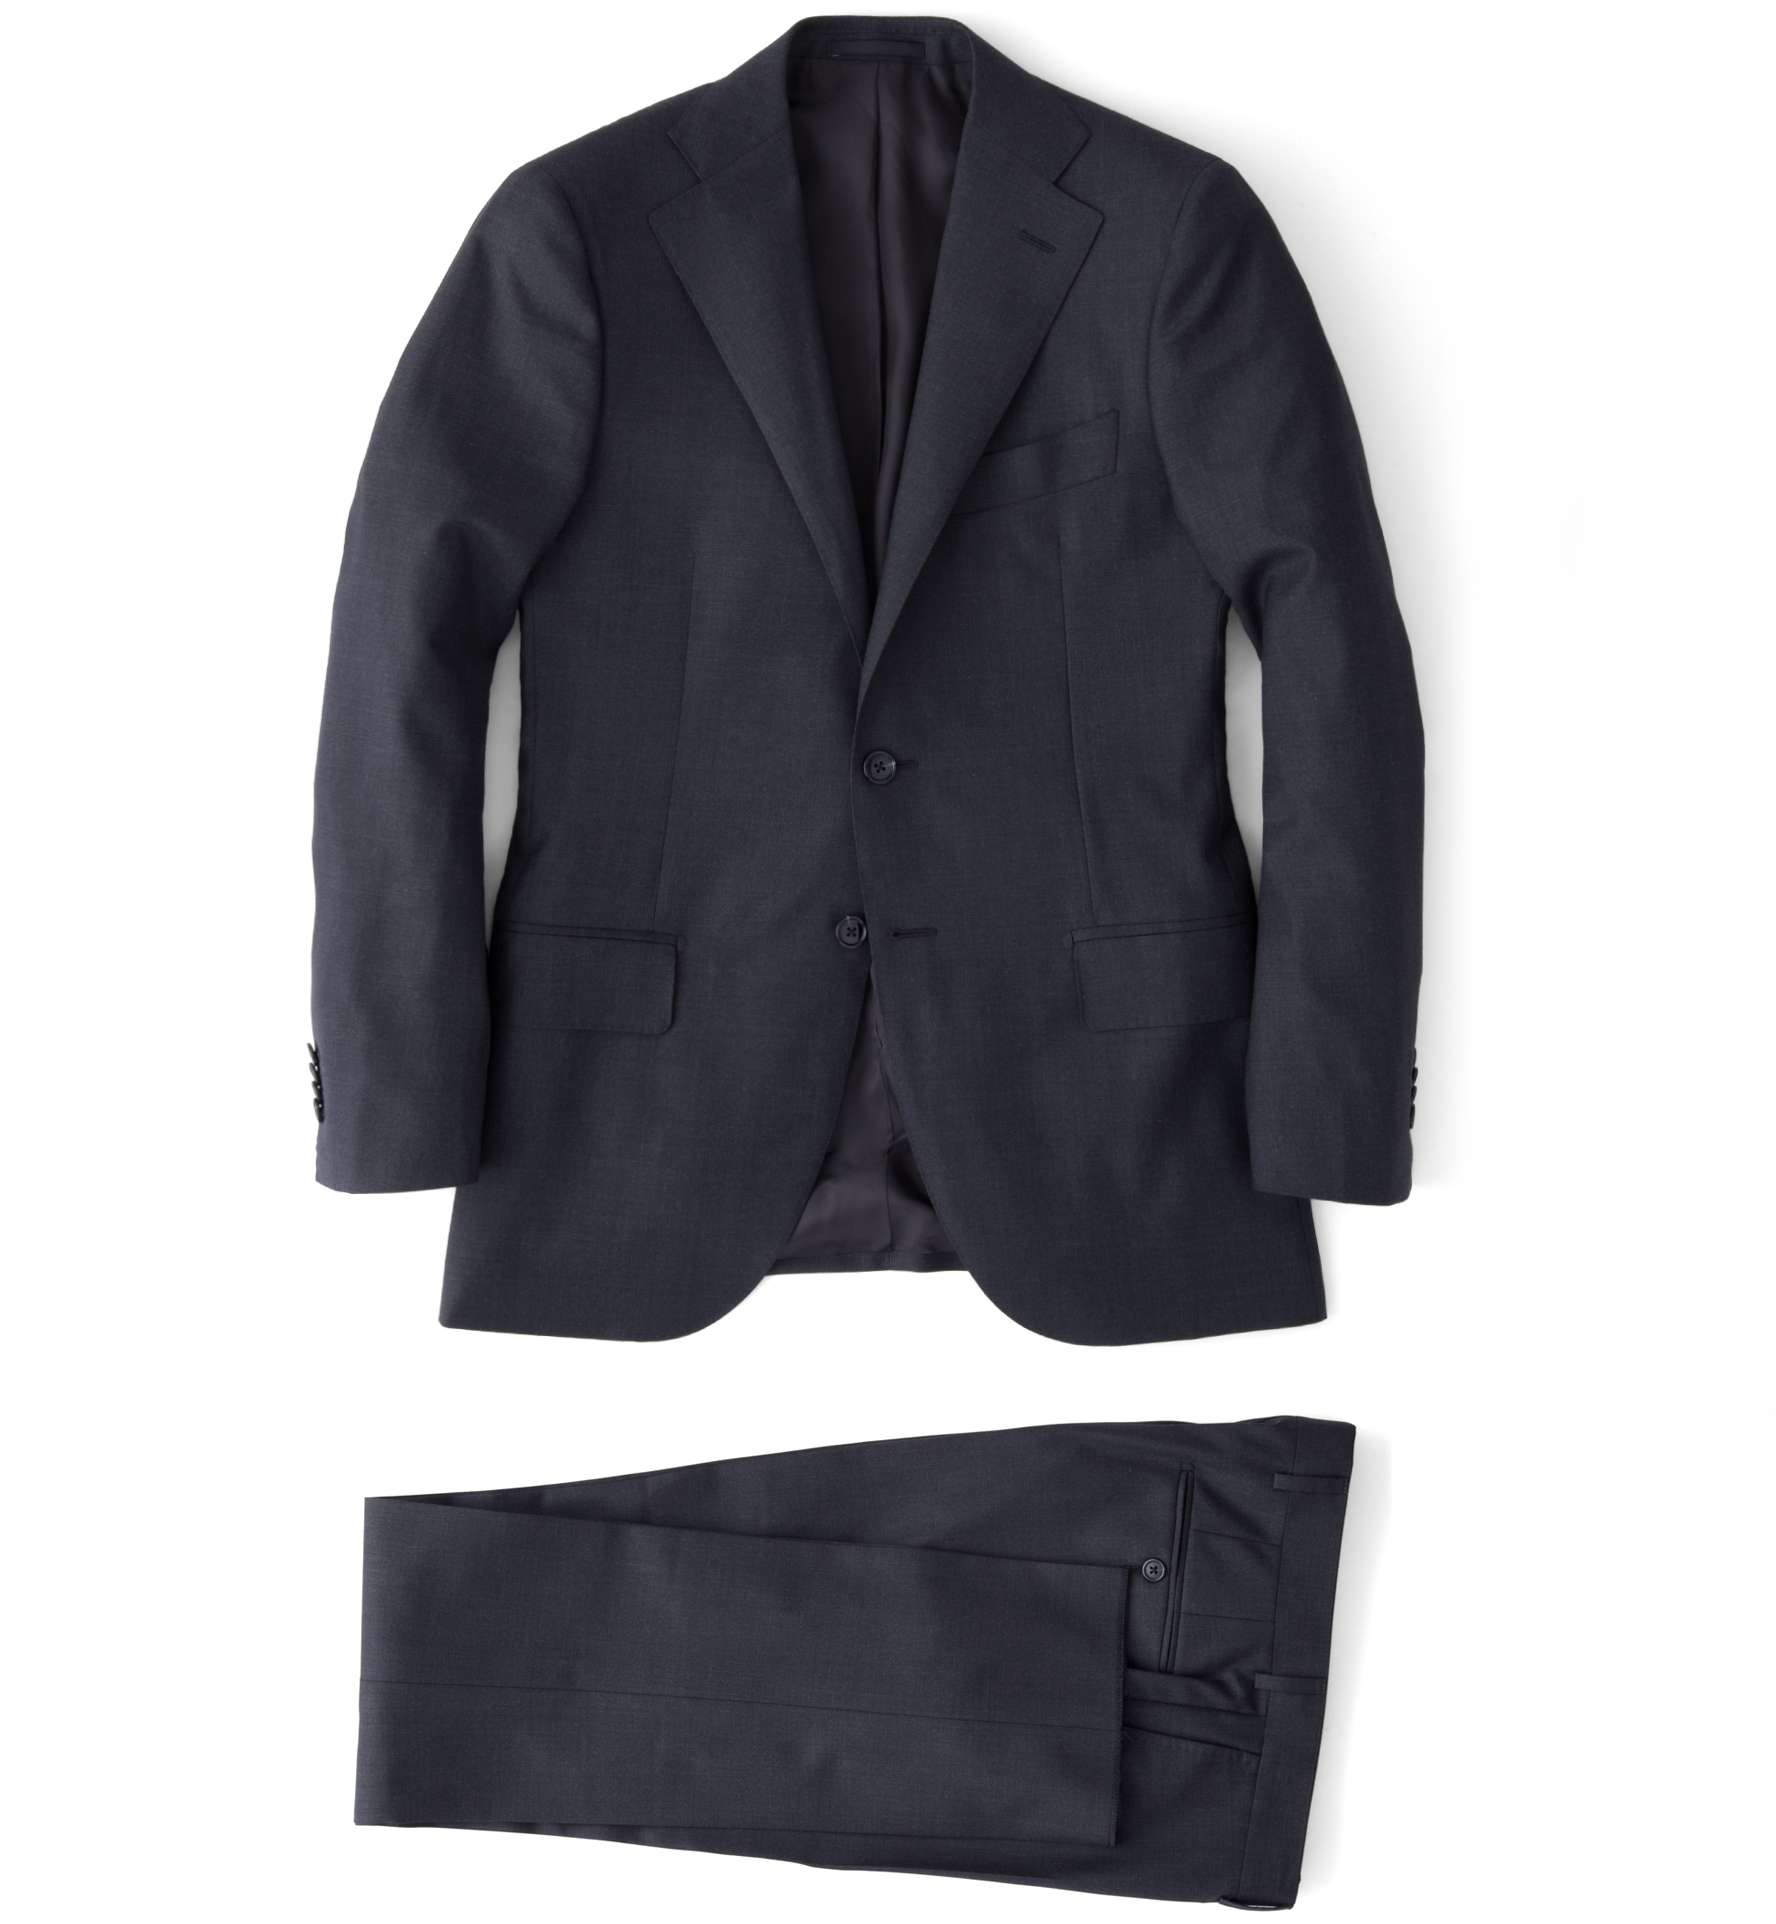 Zoom Image of Mercer Charcoal S150s Suit